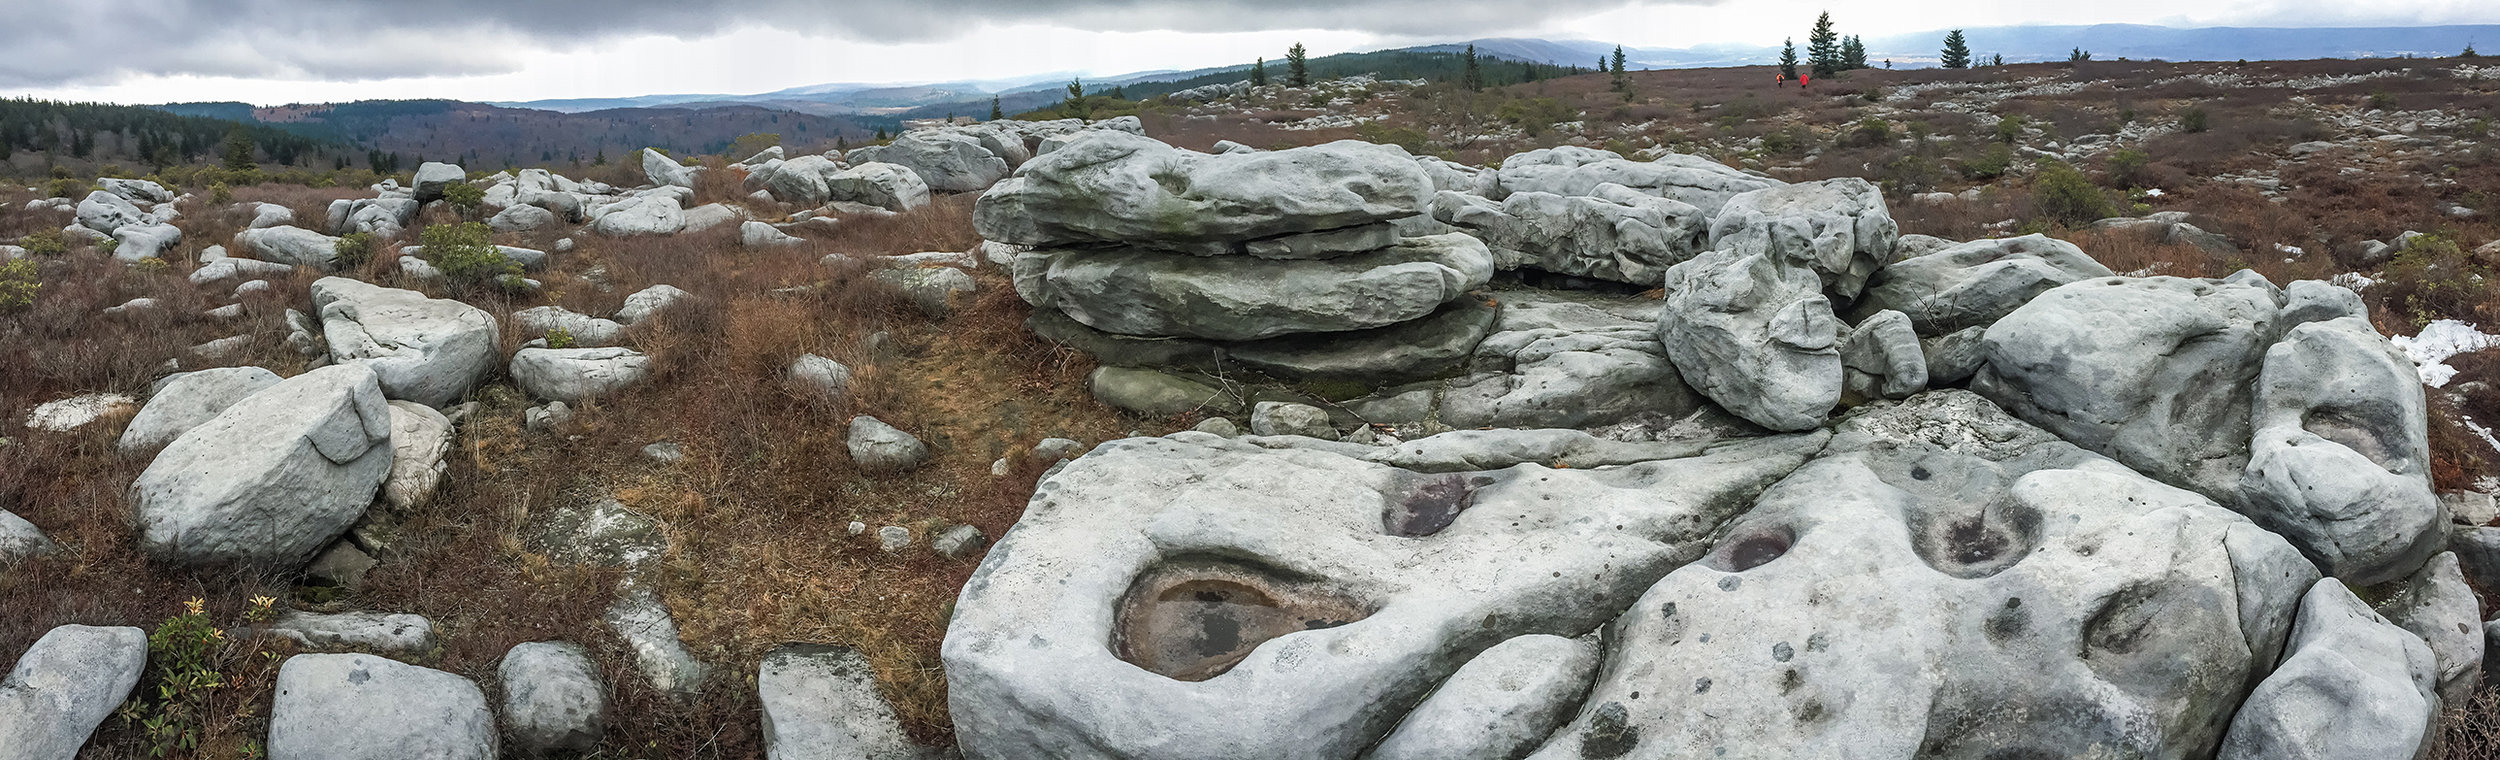 Rocks at Canaan Valley Overlook, Dolly Sods